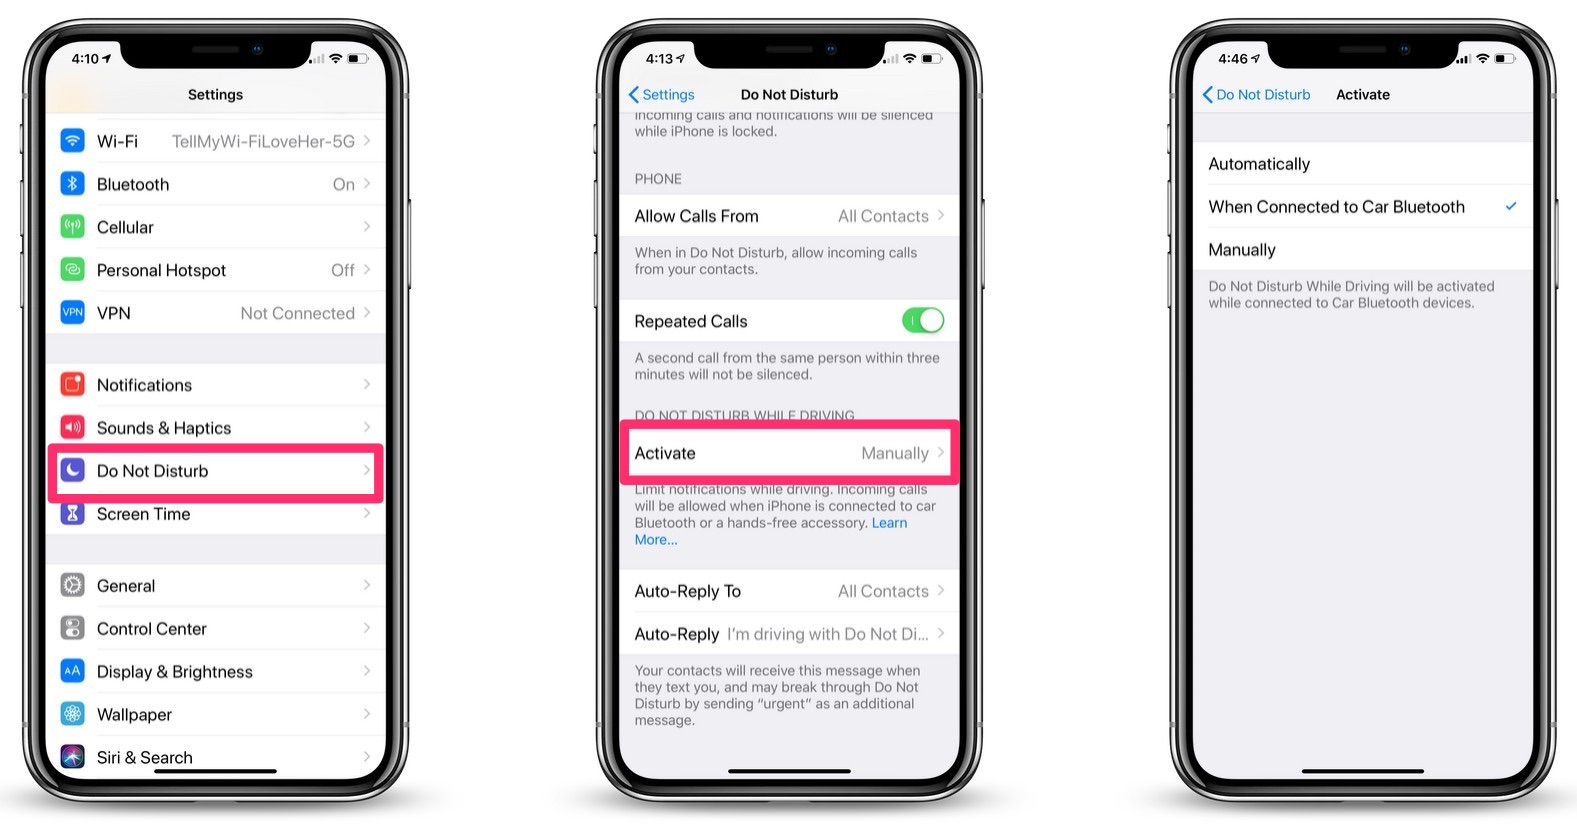 How to Turn on Do Not Disturb While Driving with iOS 11 & iOS 12 on iPhone